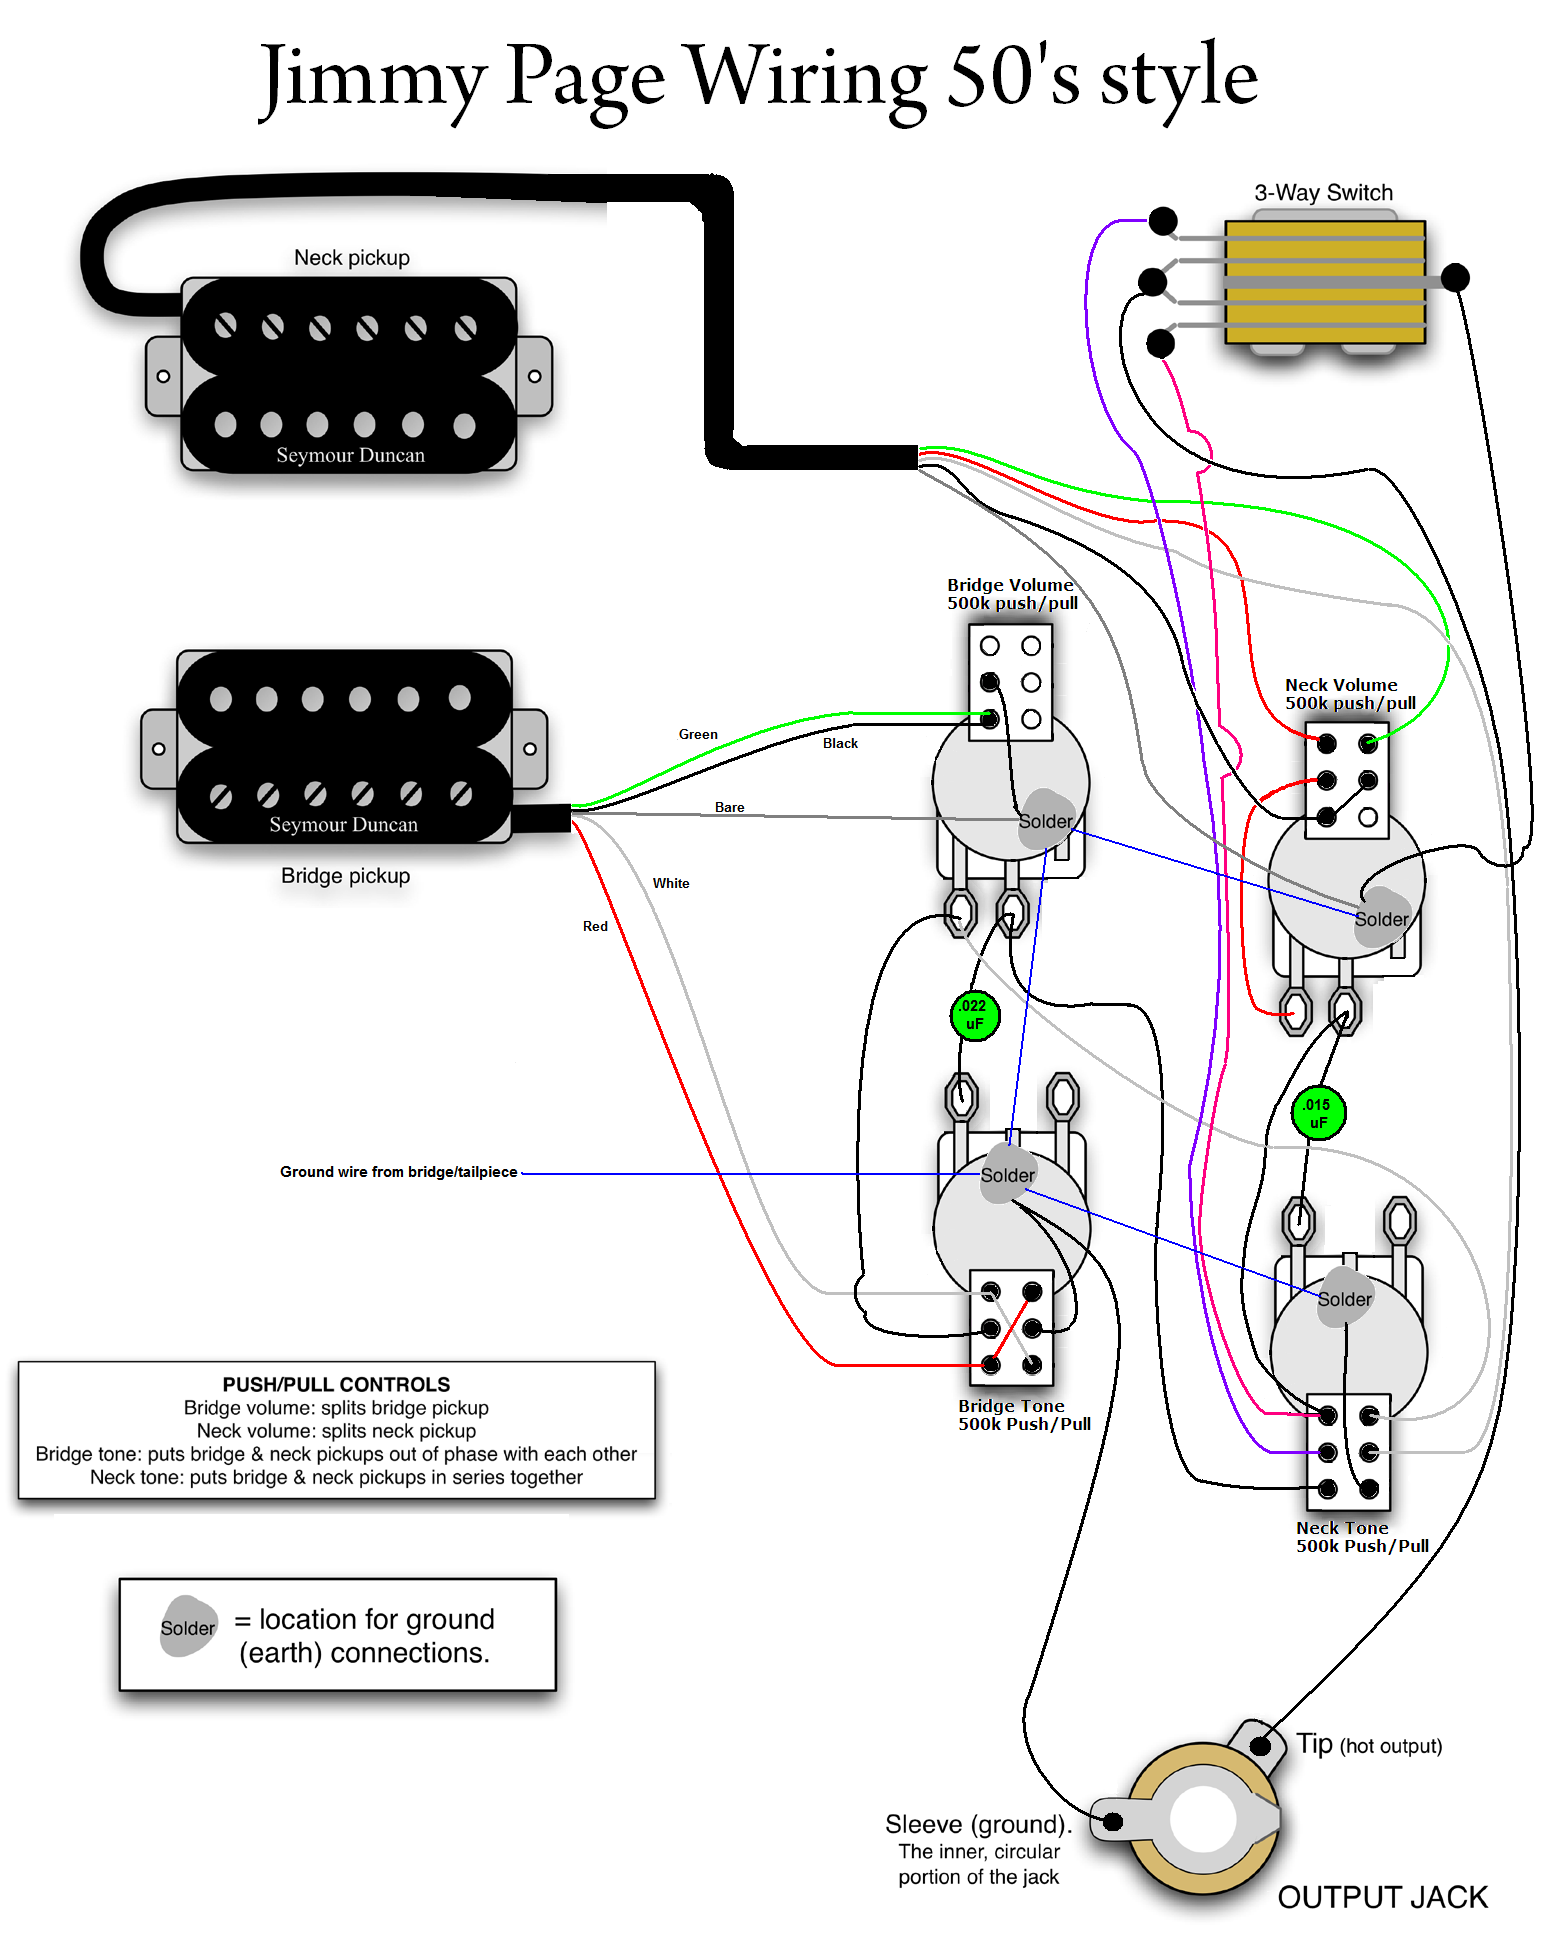 hight resolution of jimmy page les paul wiring diagram wiring diagrams loljimmy page 50s wiring mylespaul com instruments in